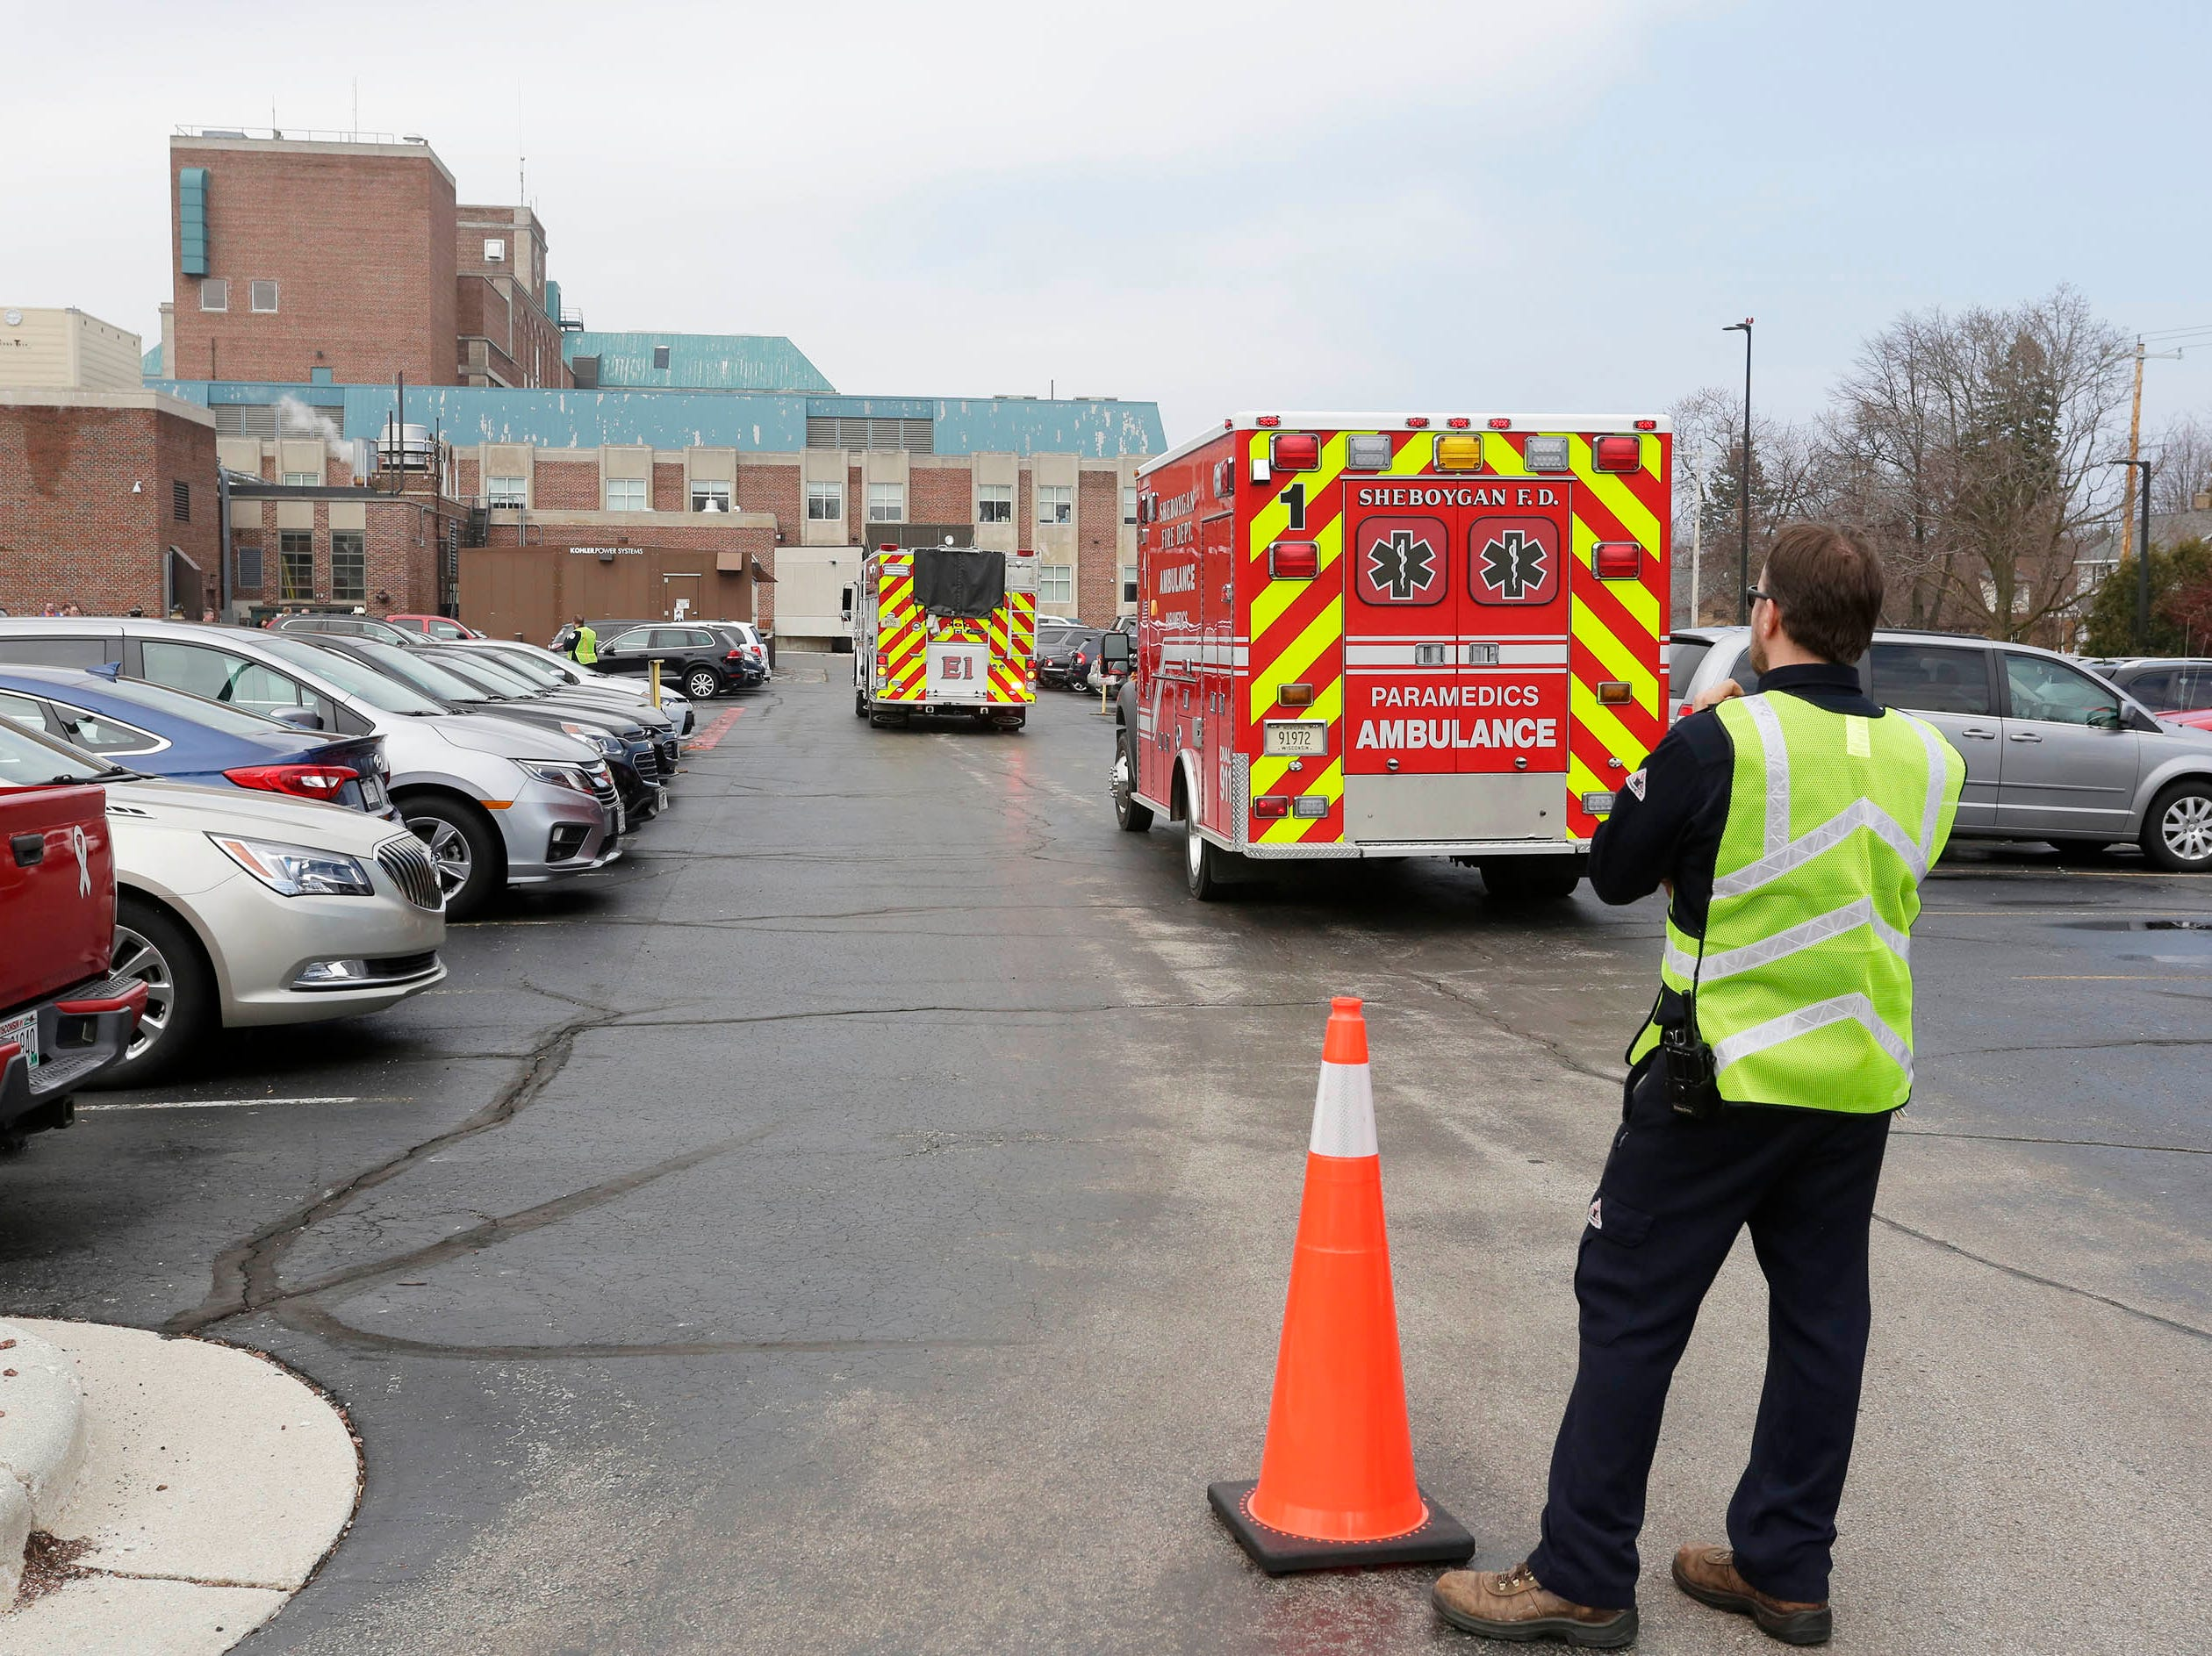 DRILL EXERCISE:  A scene at the perimeter of a  training exercise for Sheboygan area emergency agencies, Tuesday, April 16, 2019, in Sheboygan, Wis.